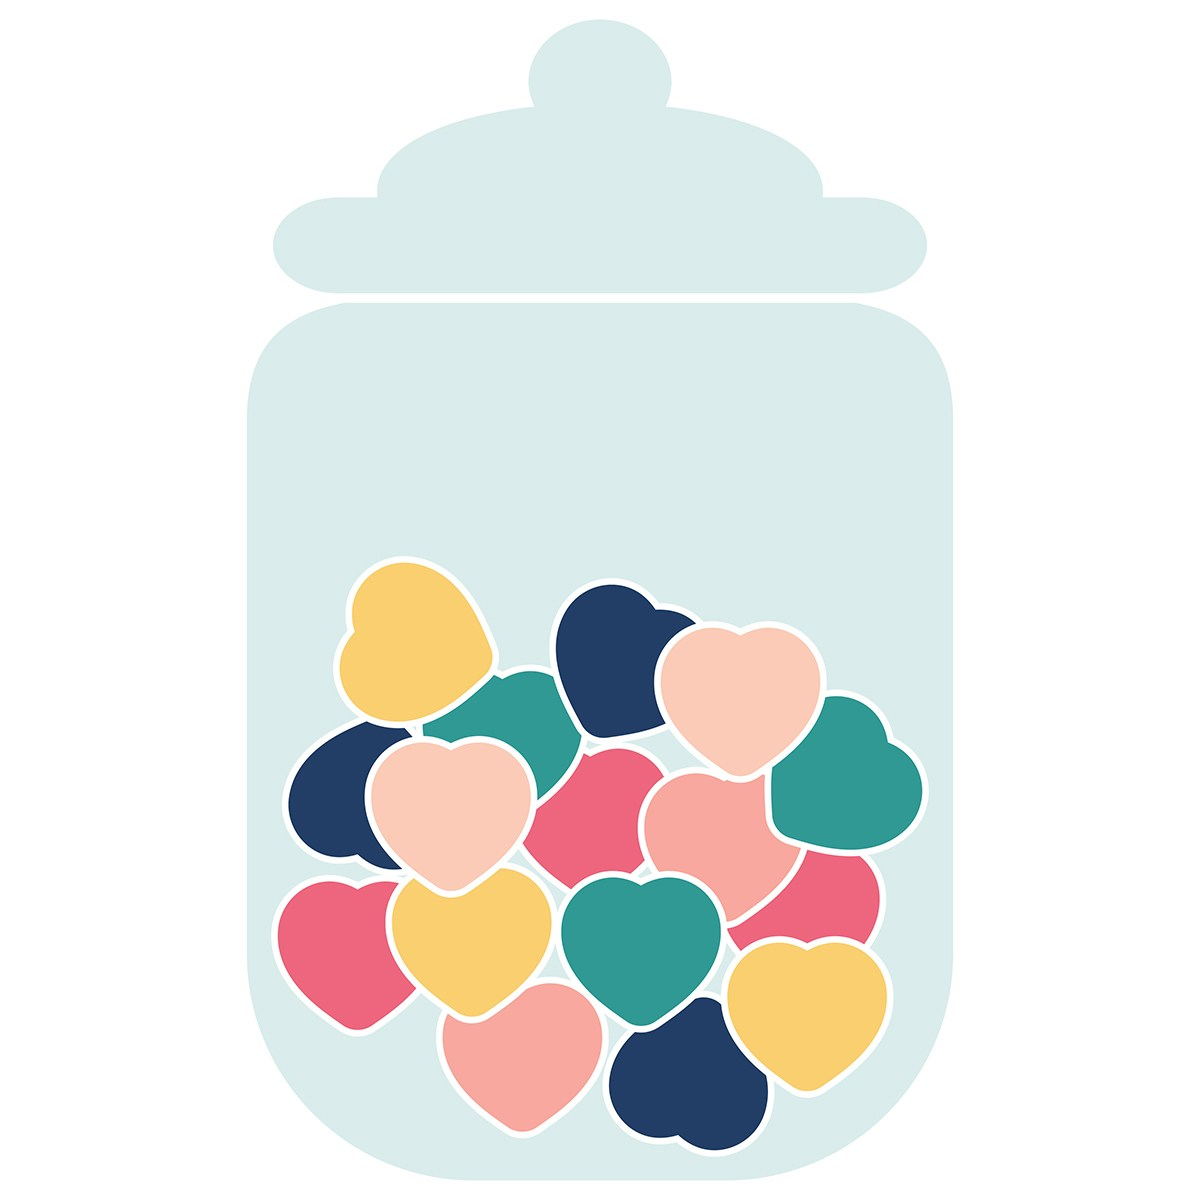 Candy jar clipart image stock Candy jar clipart 3 » Clipart Portal image stock